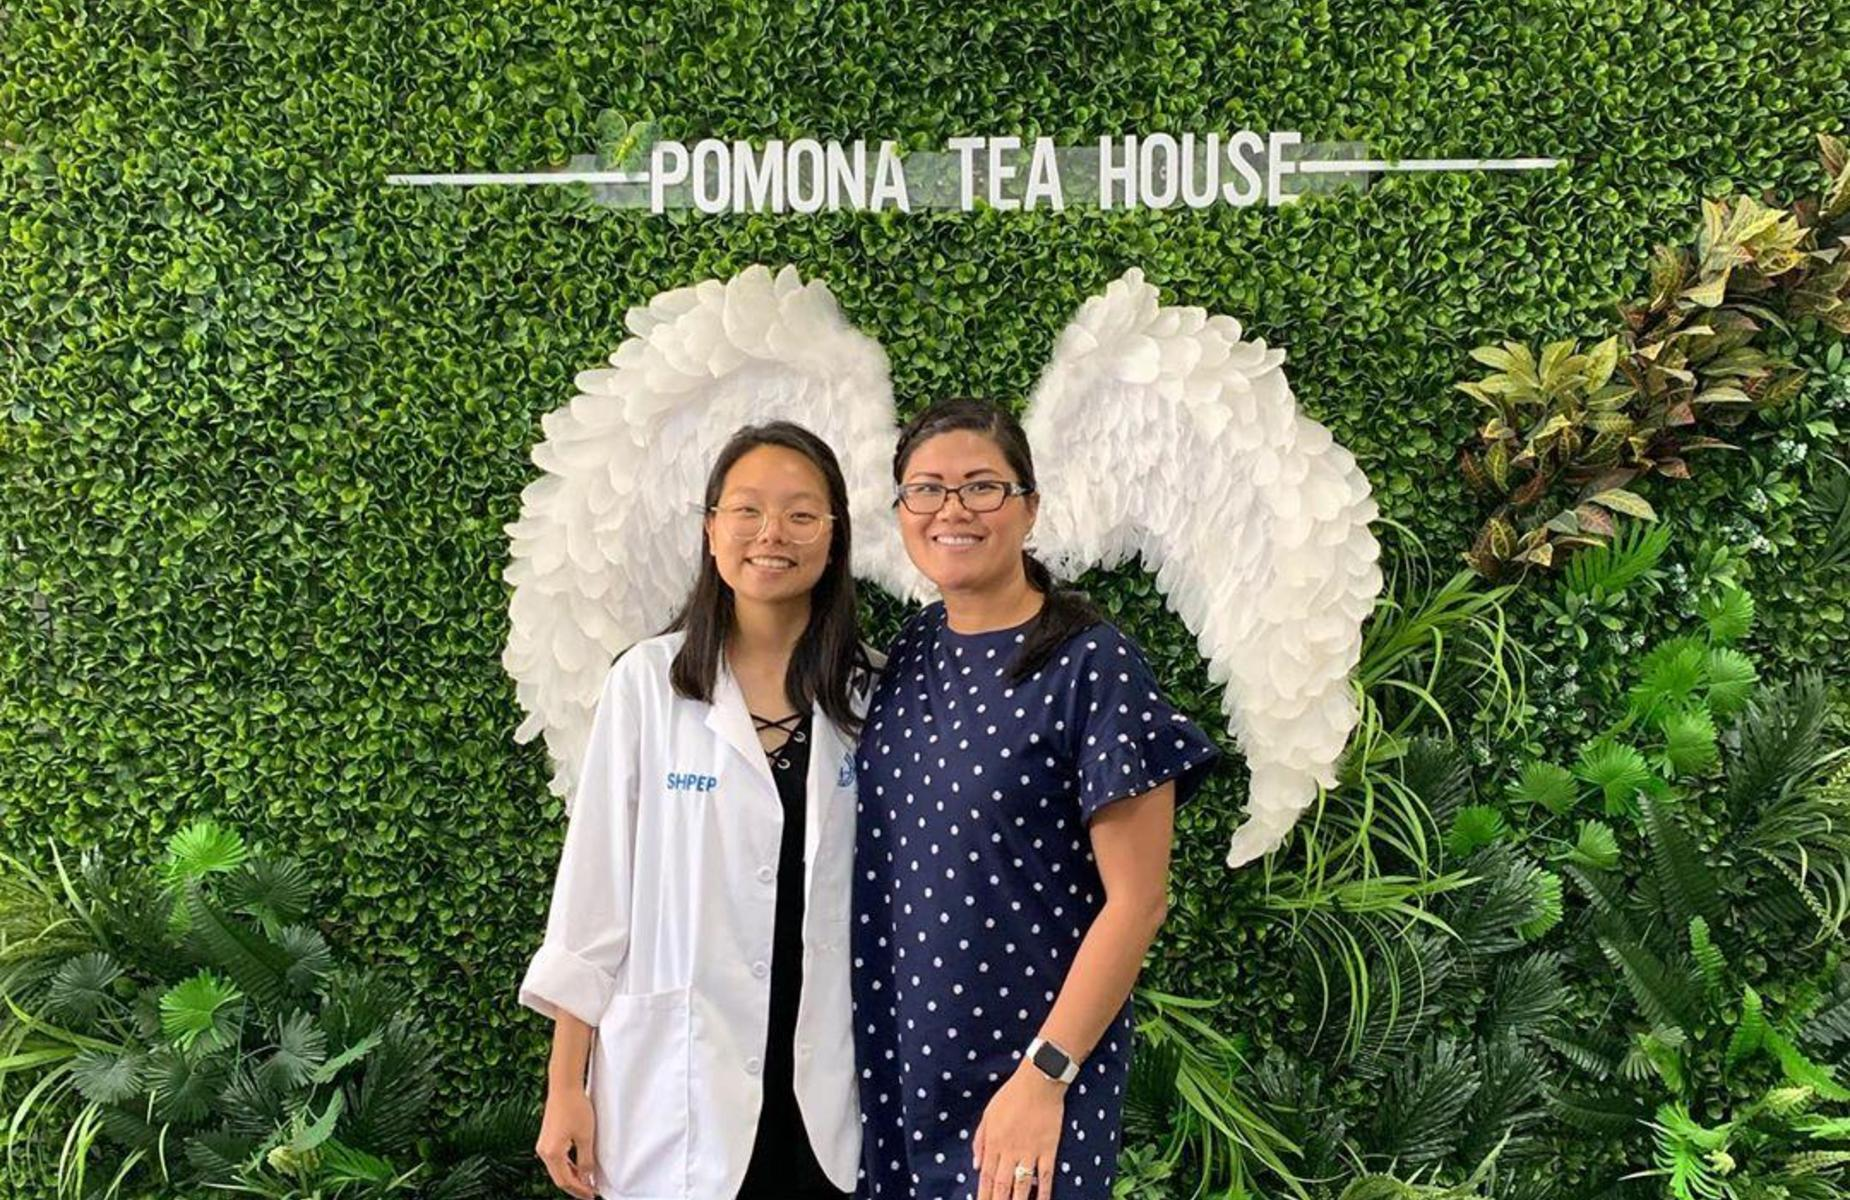 Pomona Unified is #proud of Crystal Sin, who is finishing up her work as one of the SHPEP mentors @westernunews and will be going through orientation for optometry school next week! Crystal is a graduate of @PalomaresAcad #proud2bepusd @nafcareeracads @healthcareerladder